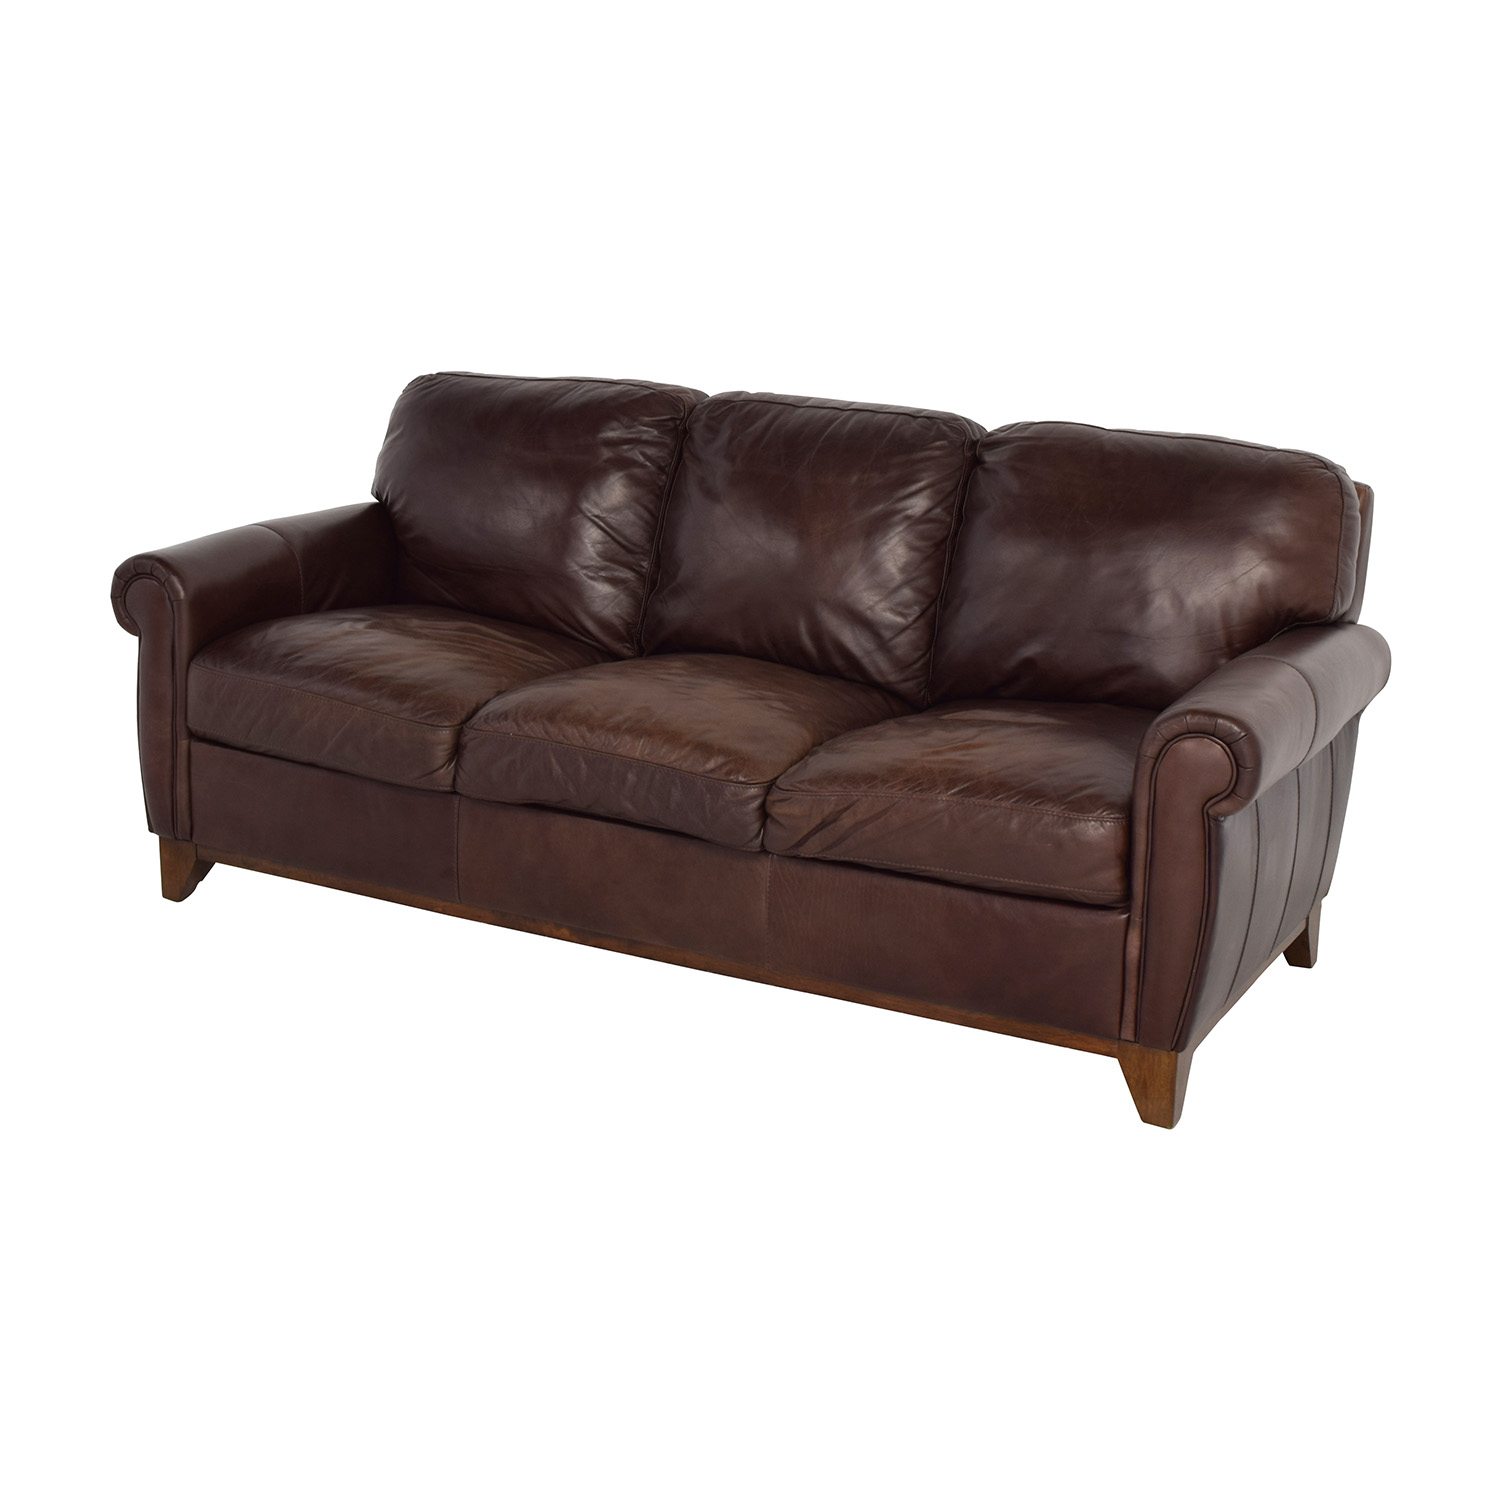 Ledersofa Ikea Säter Brown Leather Sofa For Sale Used Brown Leather Sofa 2 Seater